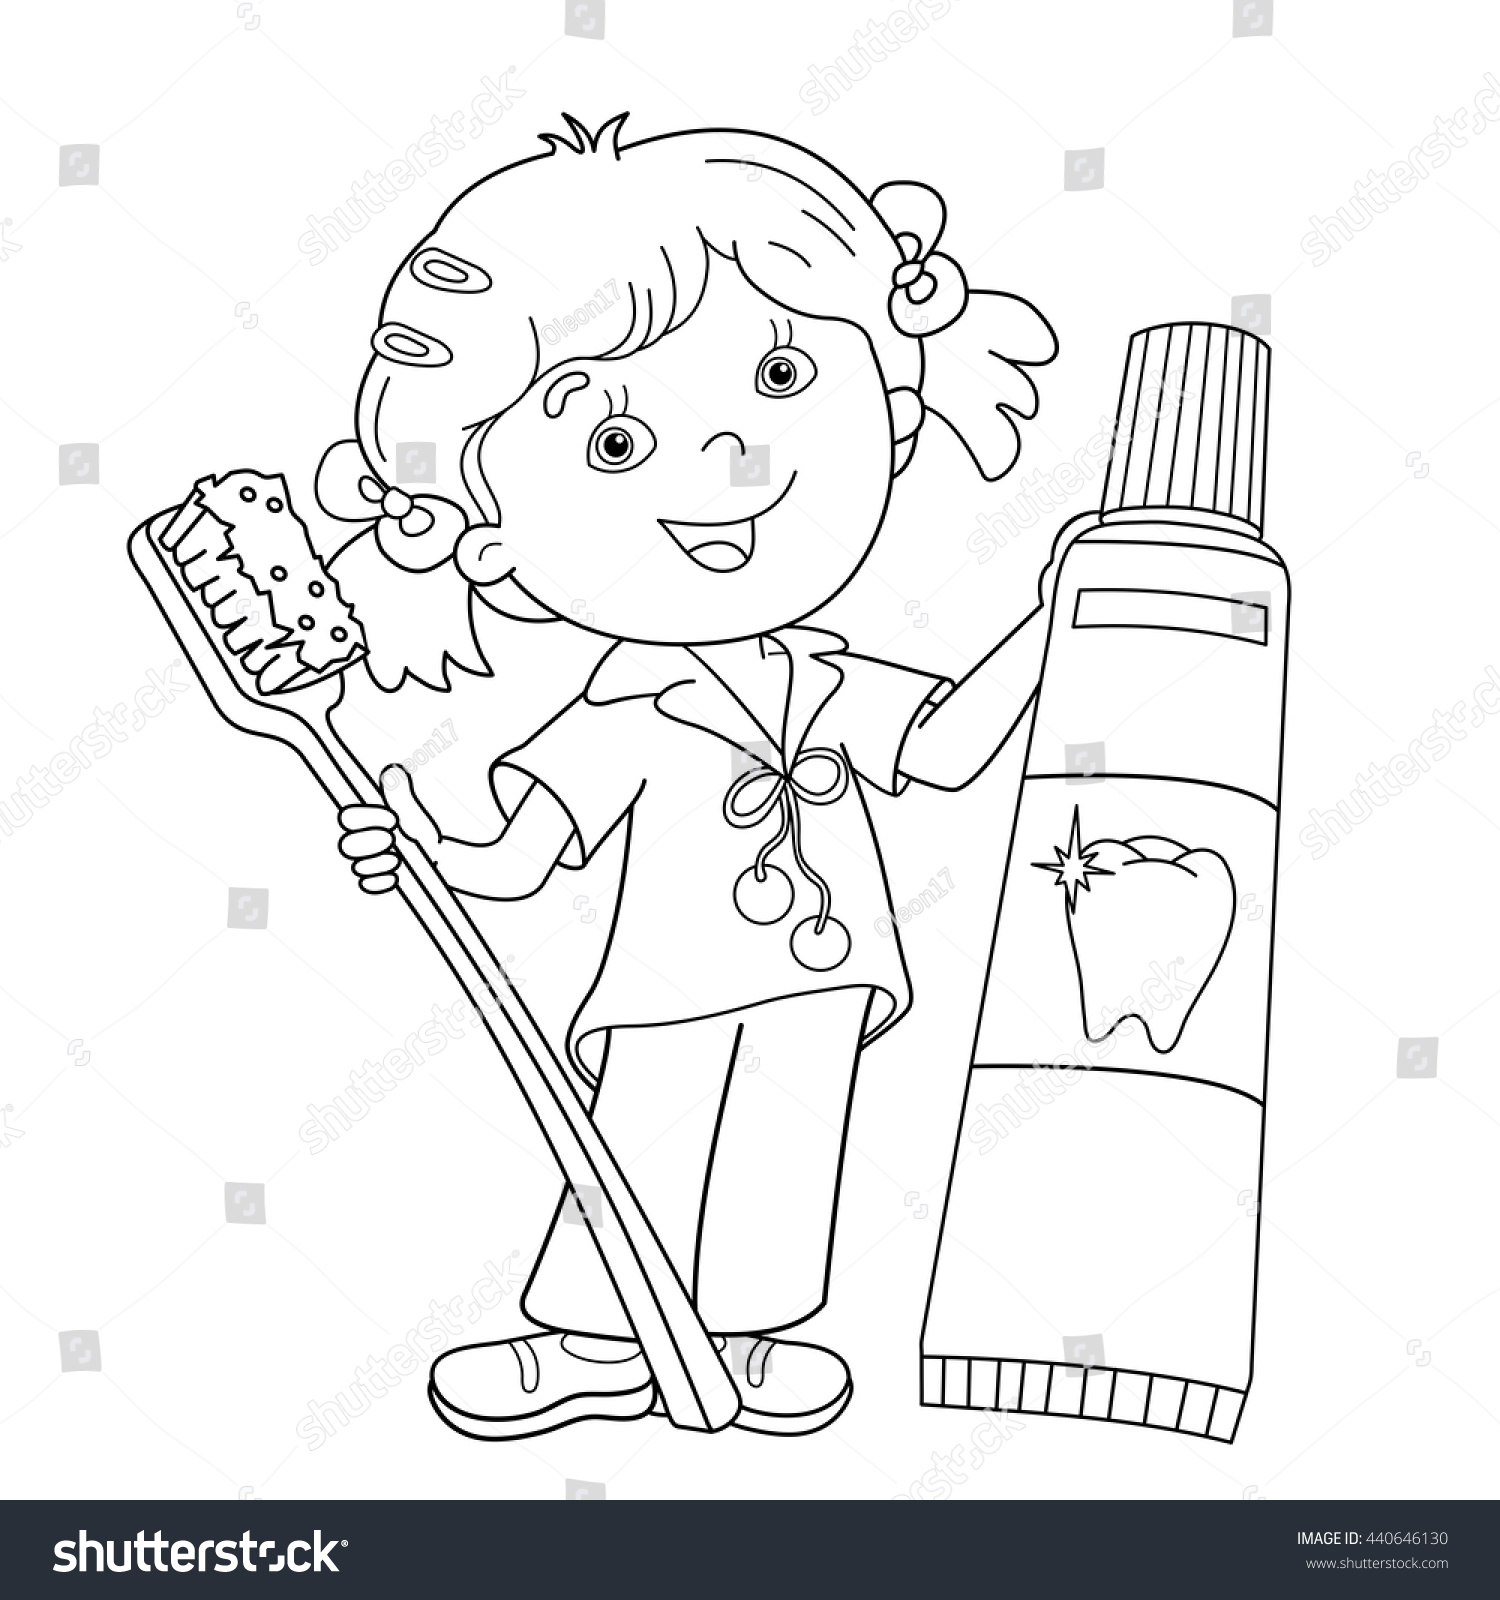 Coloring Page Outline Cartoon Girl Toothbrush Stock Vector ...